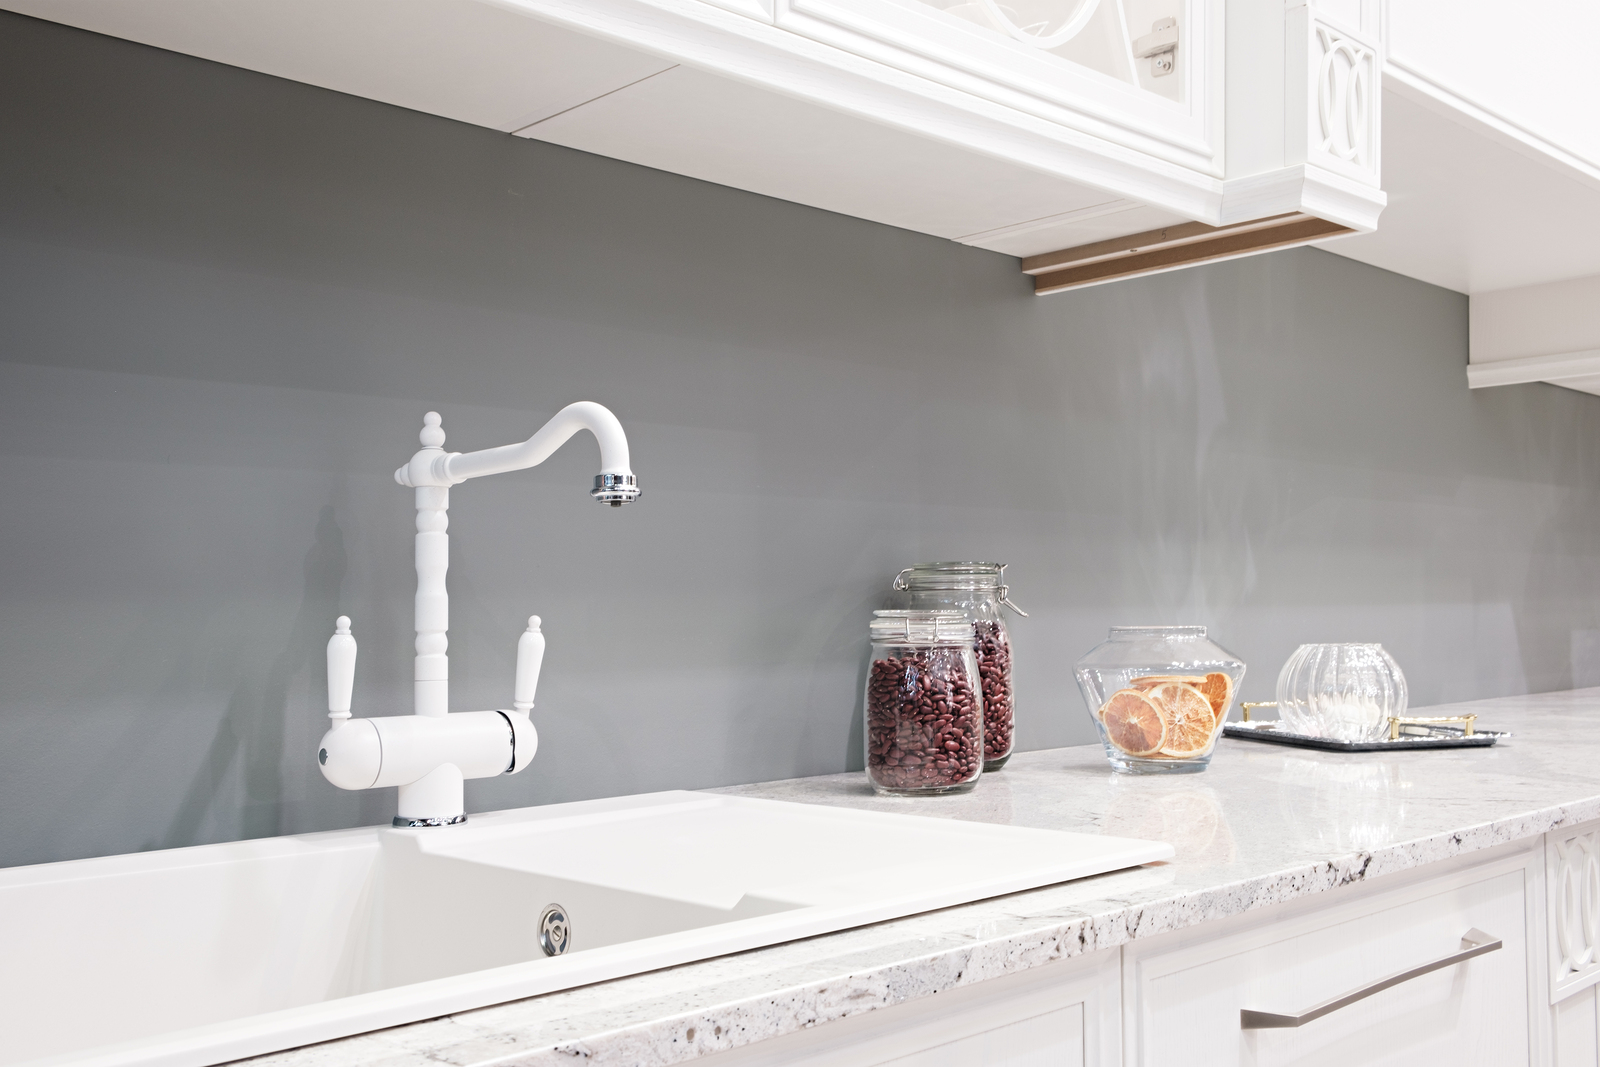 An elegant double-handled faucet in a white sink and countertop looks great and offers excellent temperature control